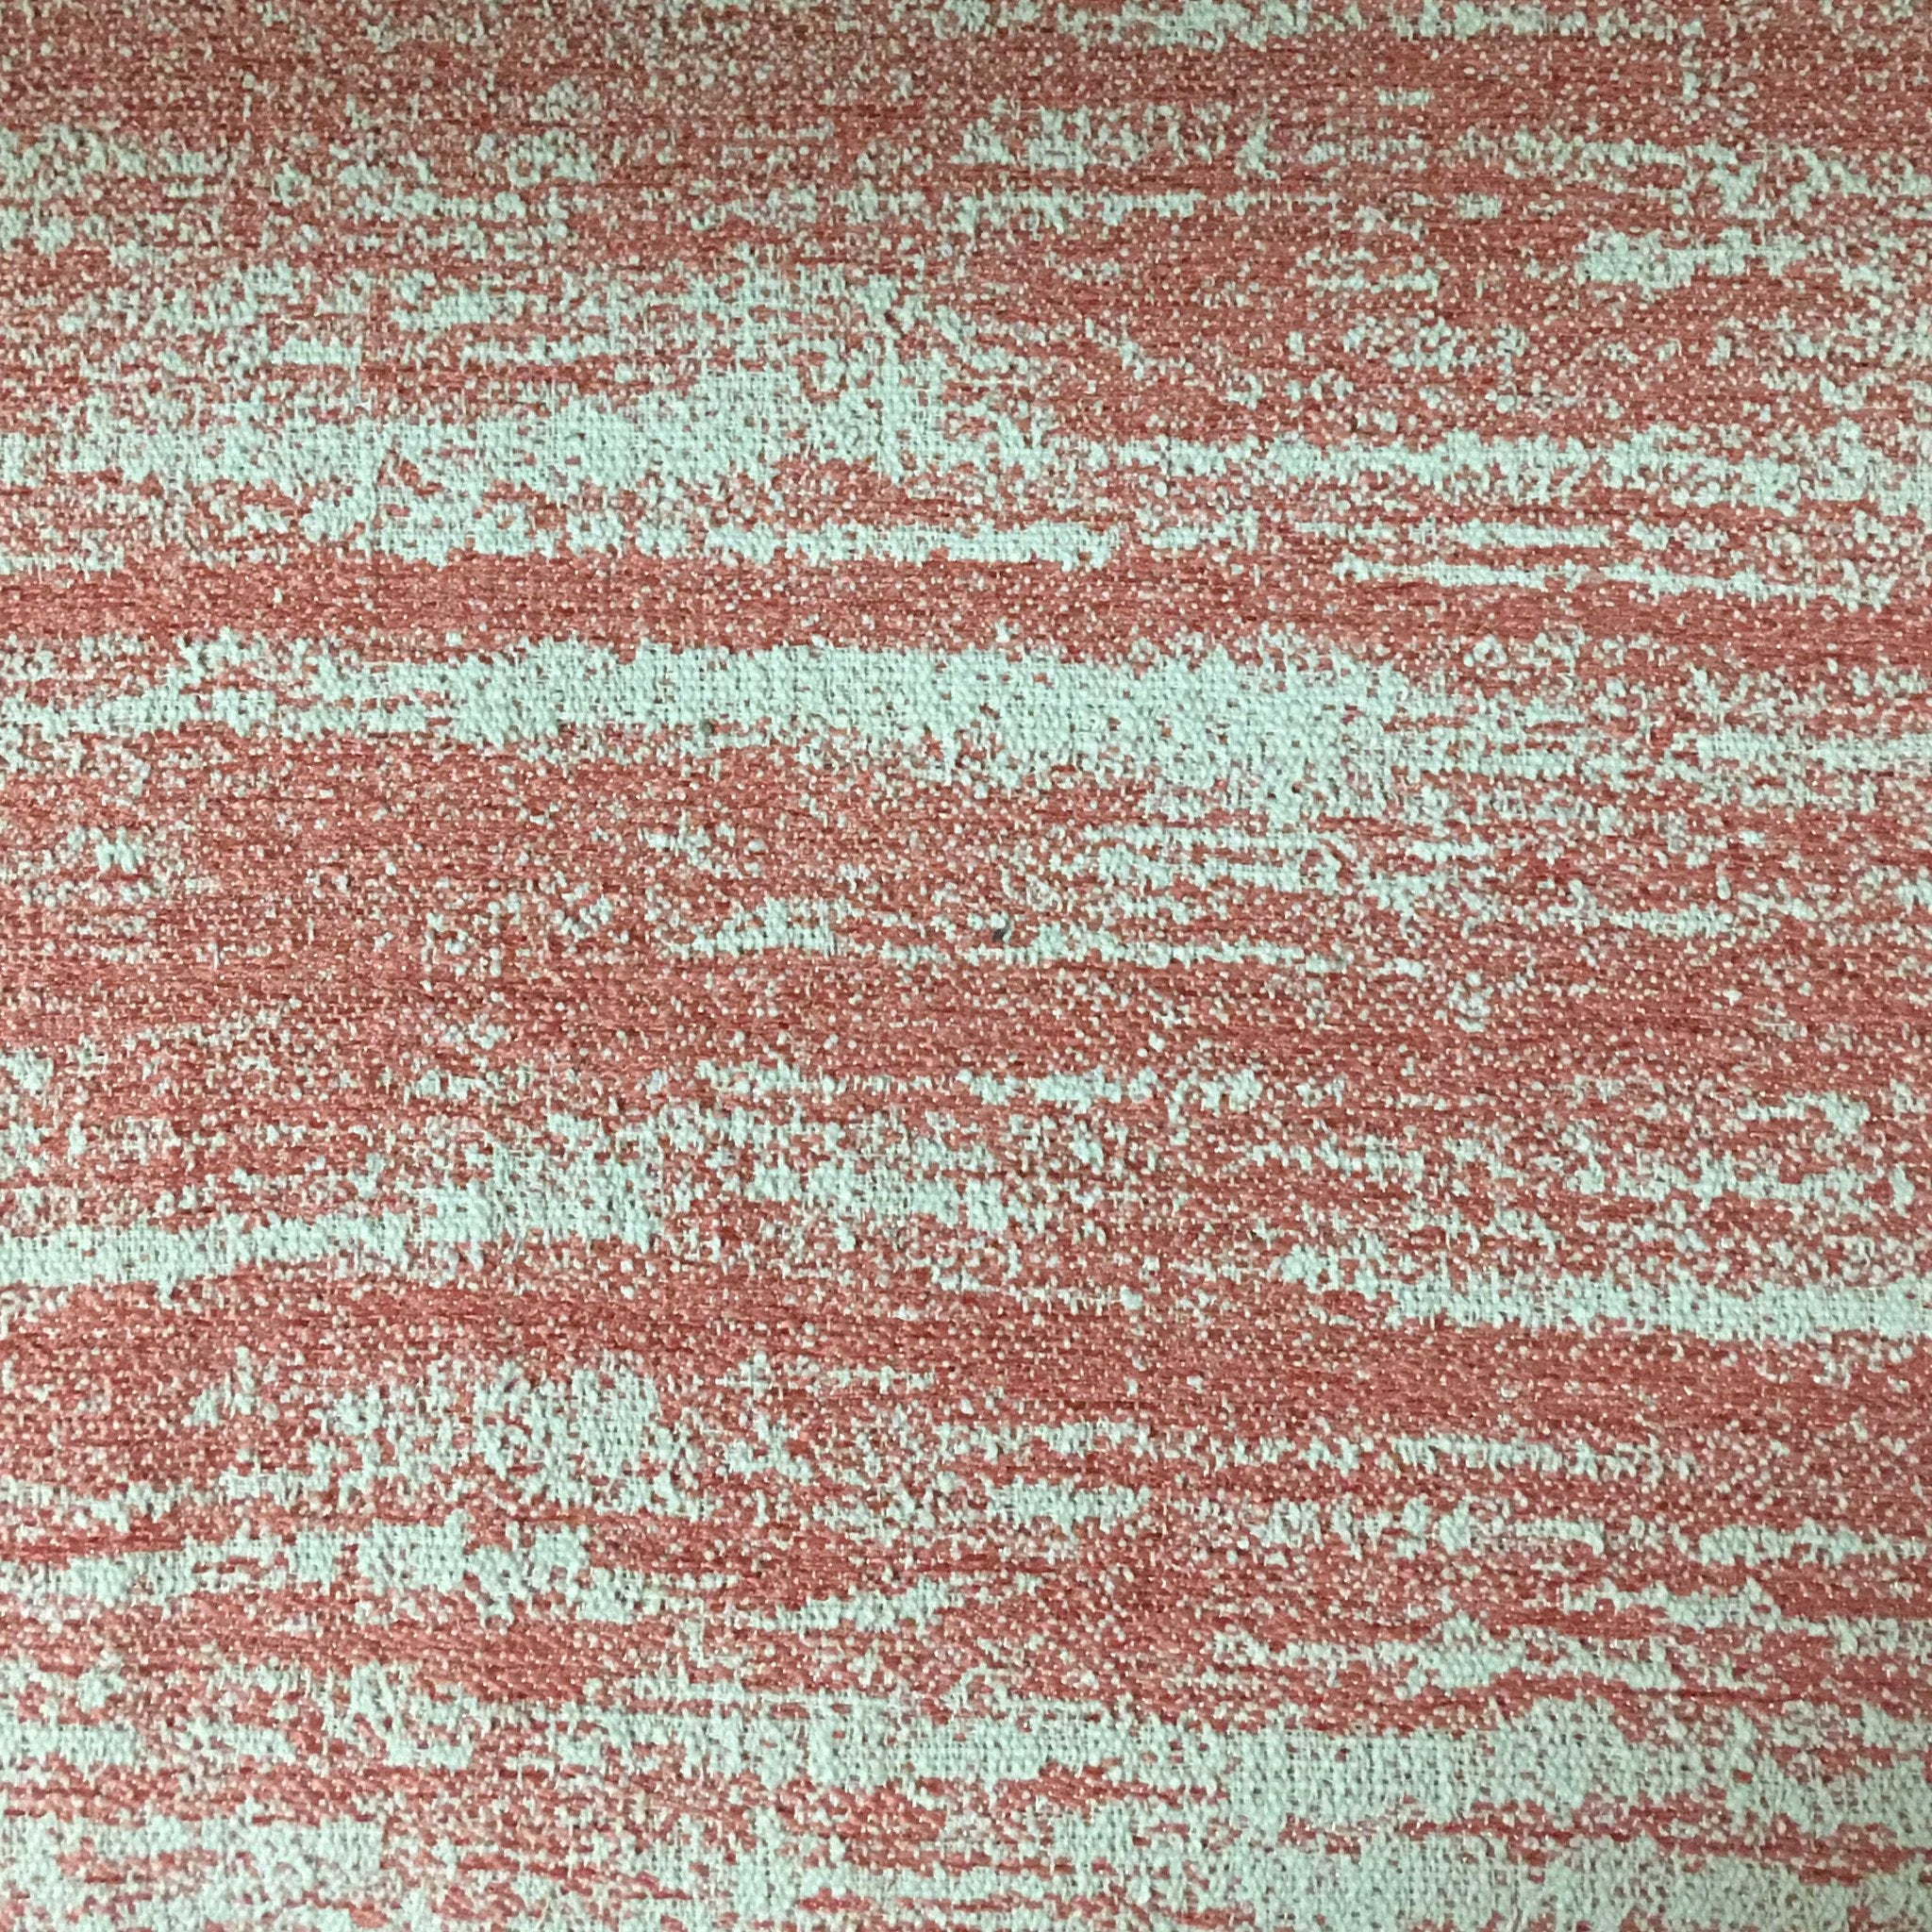 Sandy woven texture upholstery fabric by the yard 16 for Cloth for sale by the yard